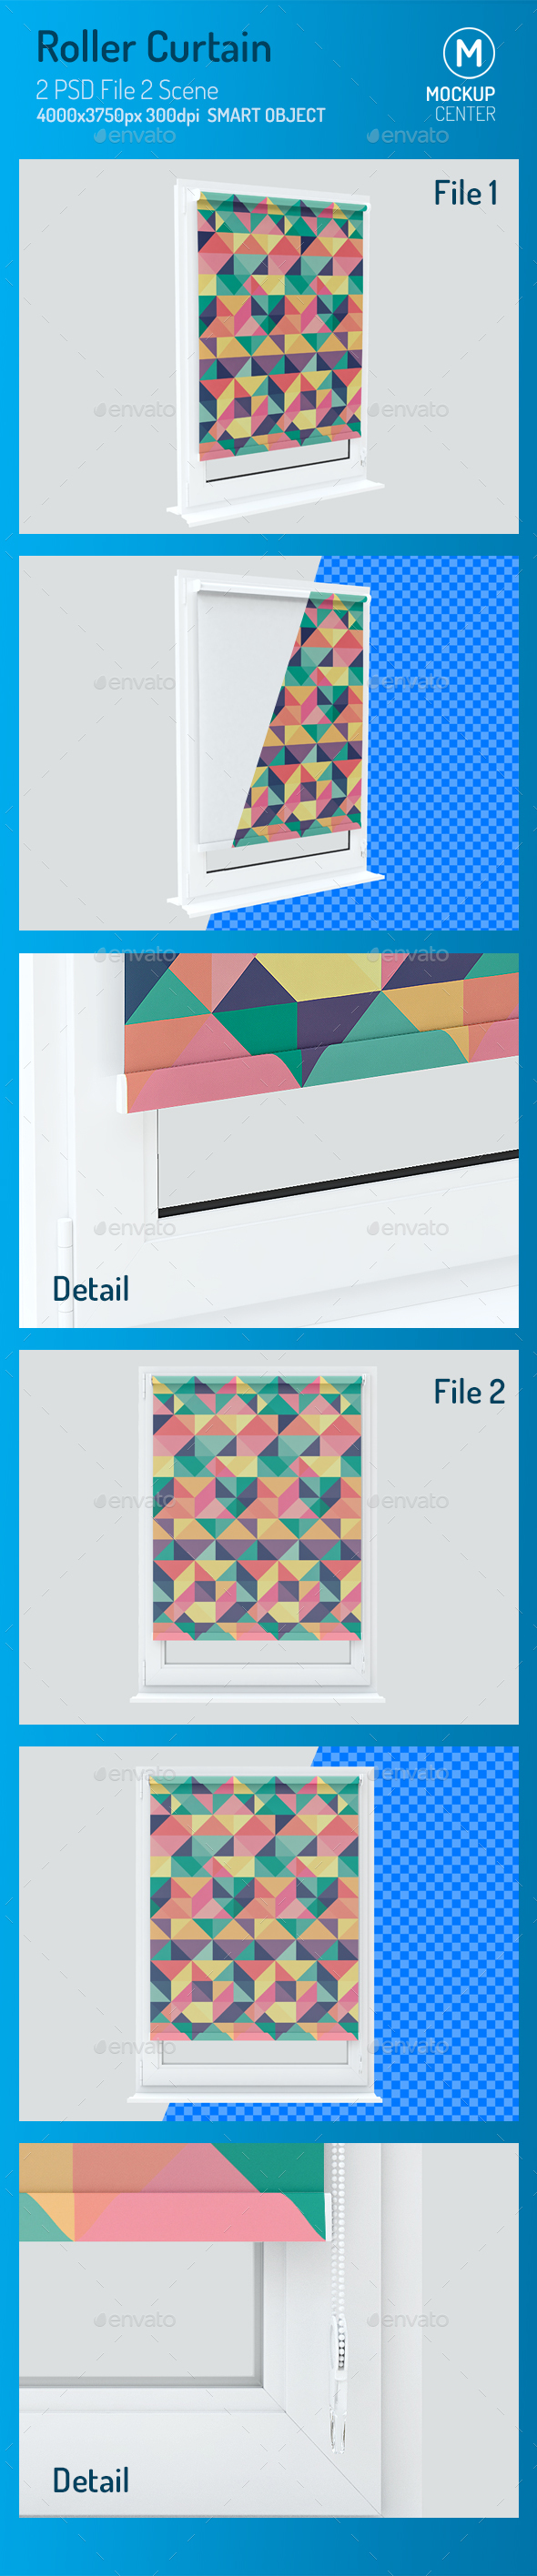 Roller Curtain Mockup - Print Product Mock-Ups